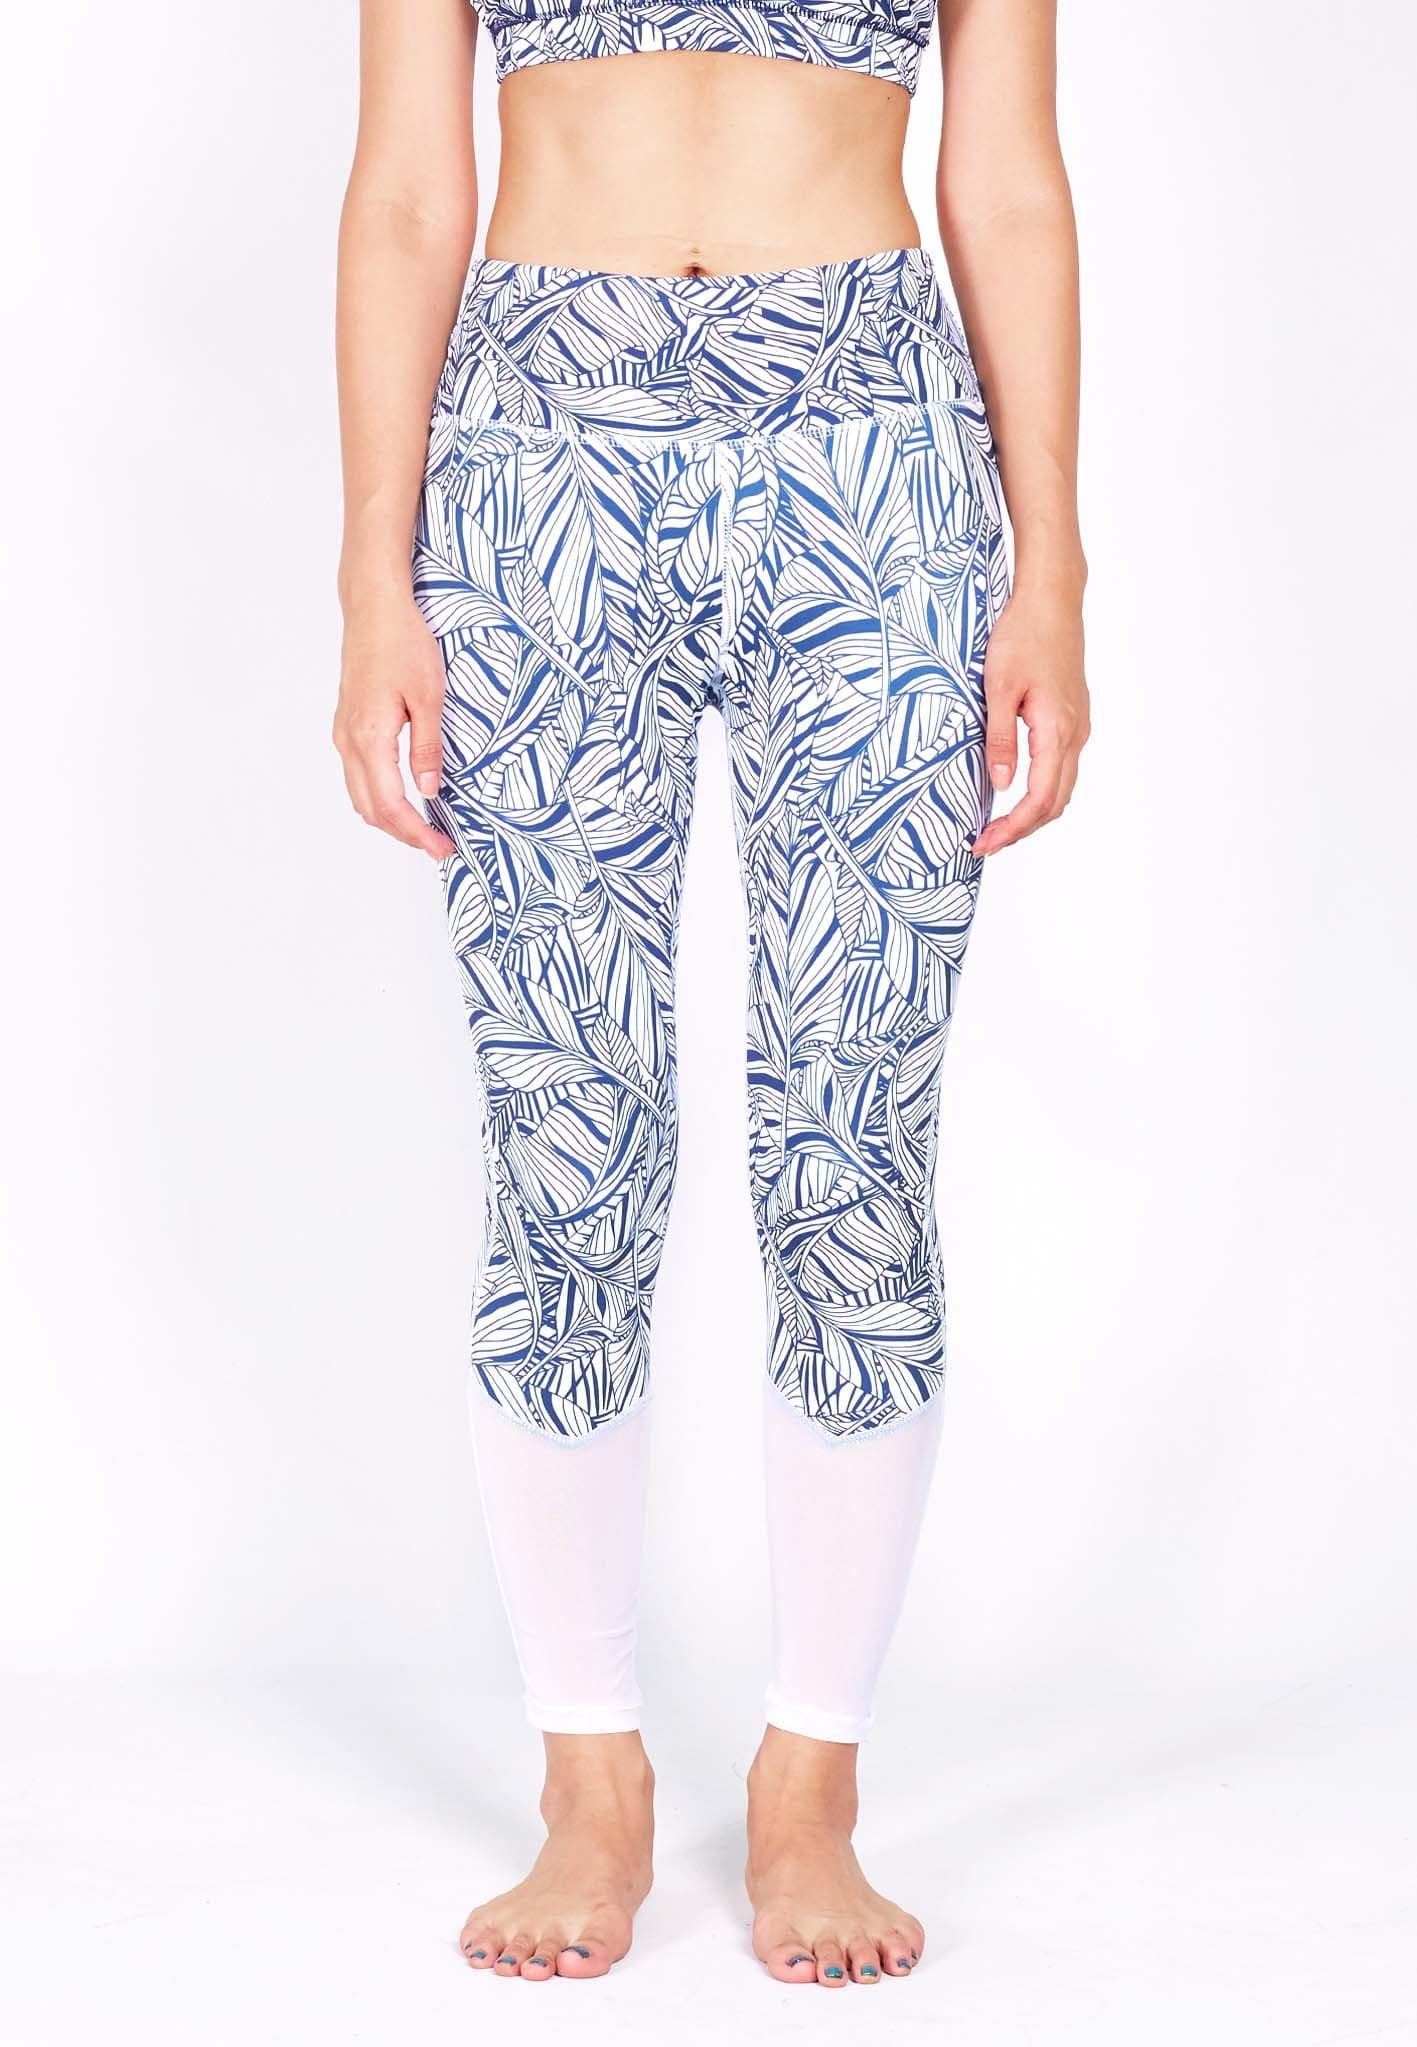 HYPE Blocking Leggings (with Keeperband®) in Mesh/ Liberty Print(S - 3XL) - FUNFIT